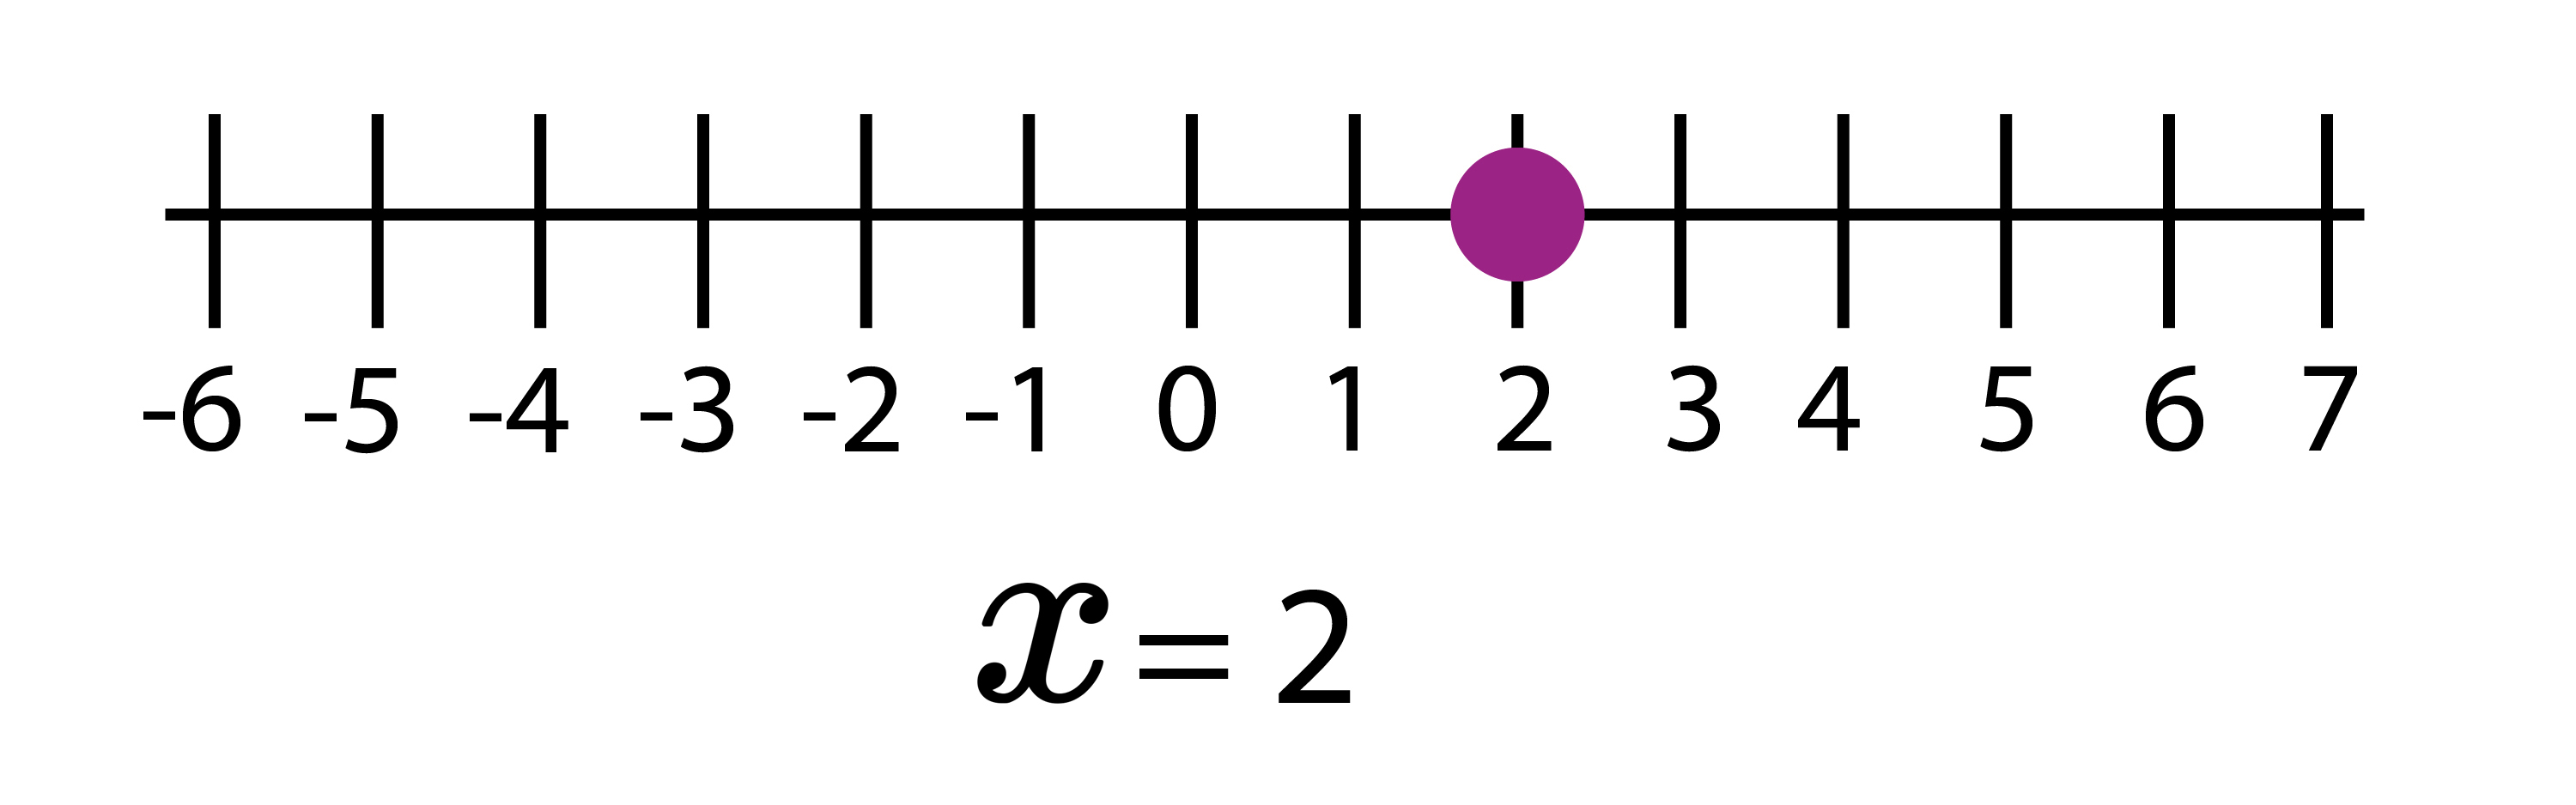 Inequalities Can Be Represented On A Number Line